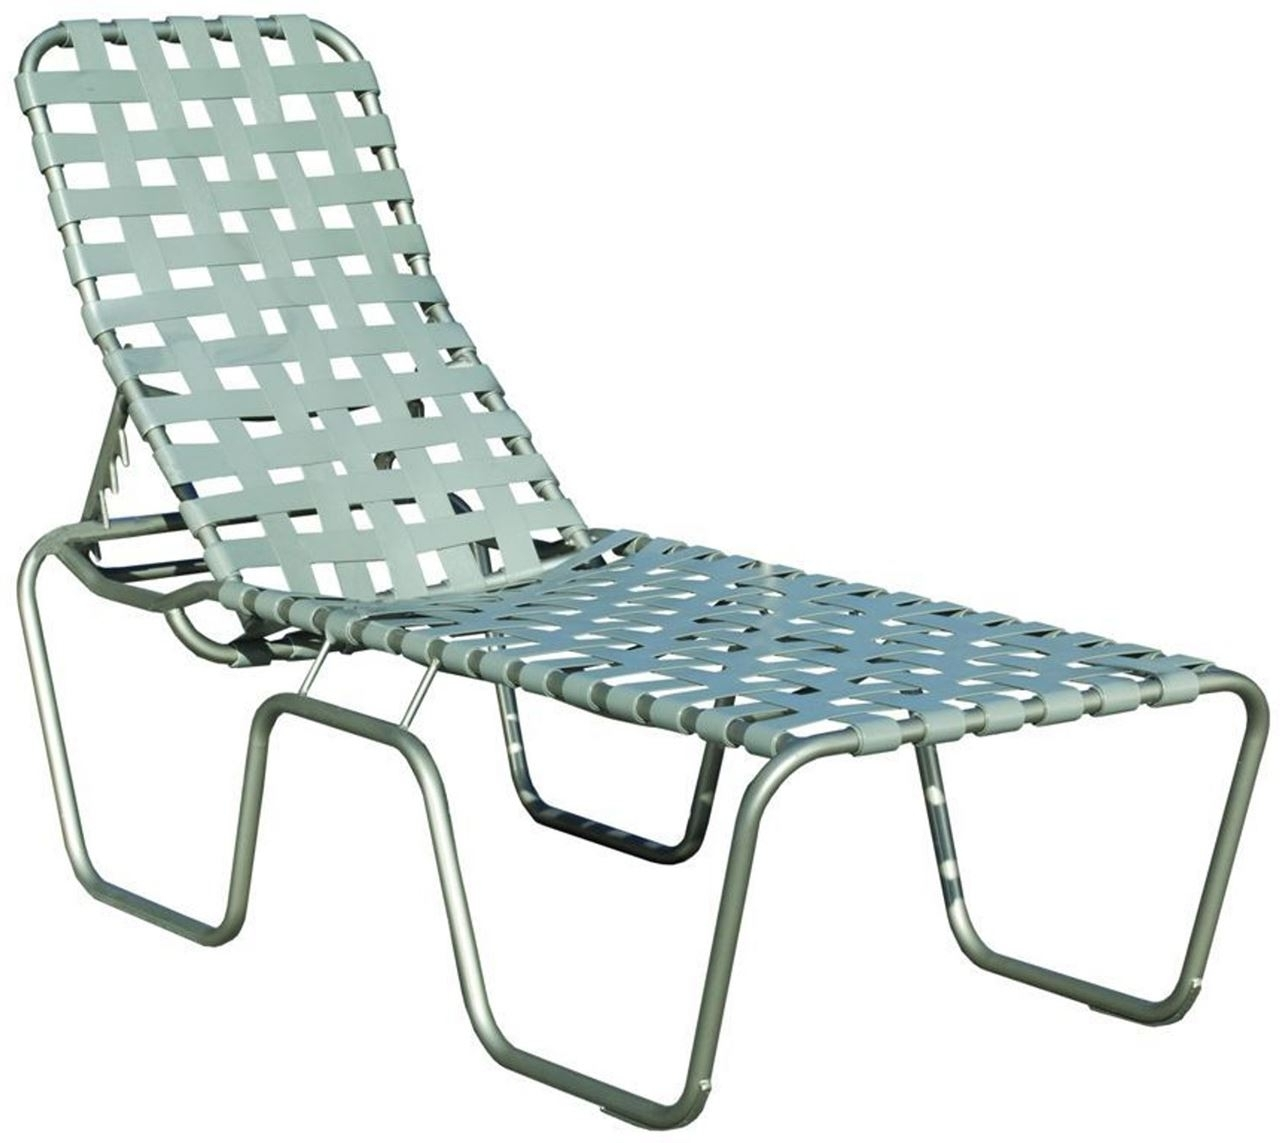 Commercial Basketweave Strap High Seat Chaise Lounge Sanibel With Regard To 2018 Chaise Lounge Strap Chairs (View 13 of 15)